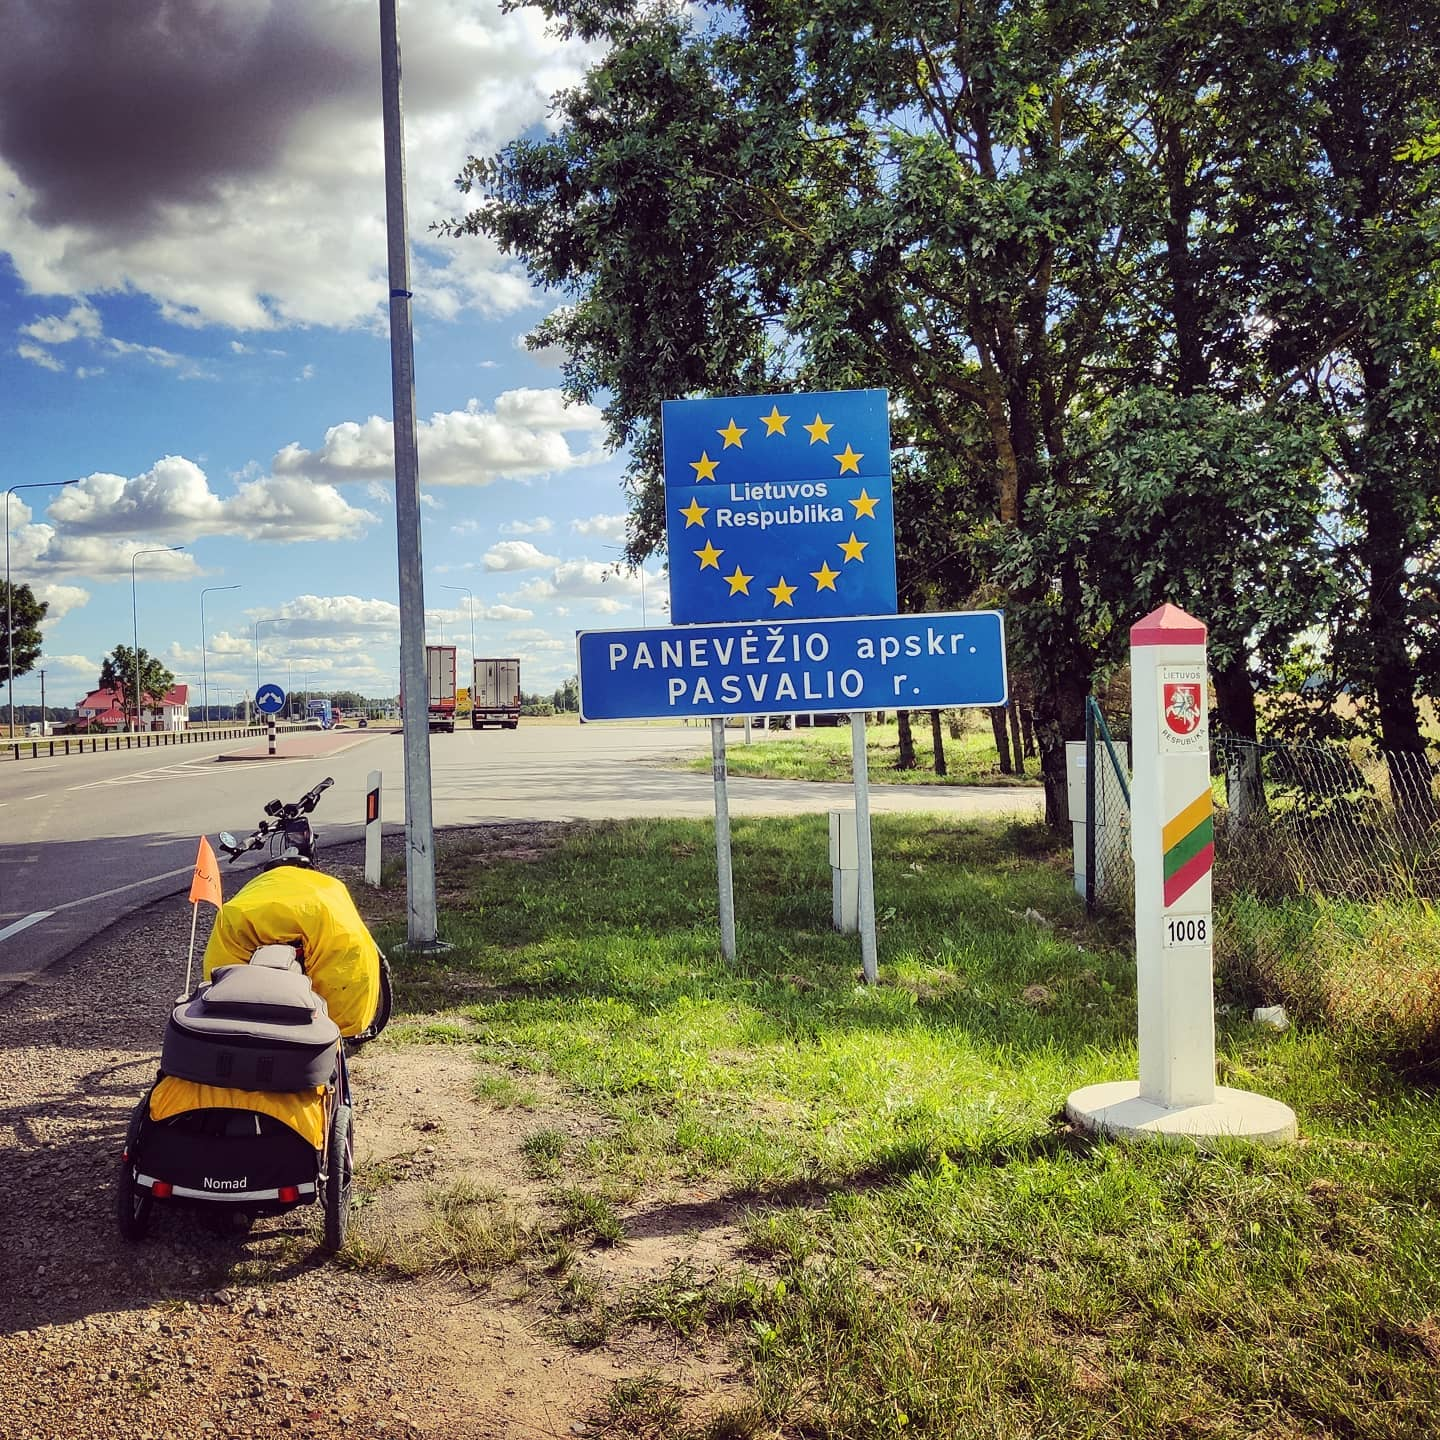 Ride 55 - day 76 - from Riga (Latvia) to Panevėžys (Lithuania) - 28 August 20